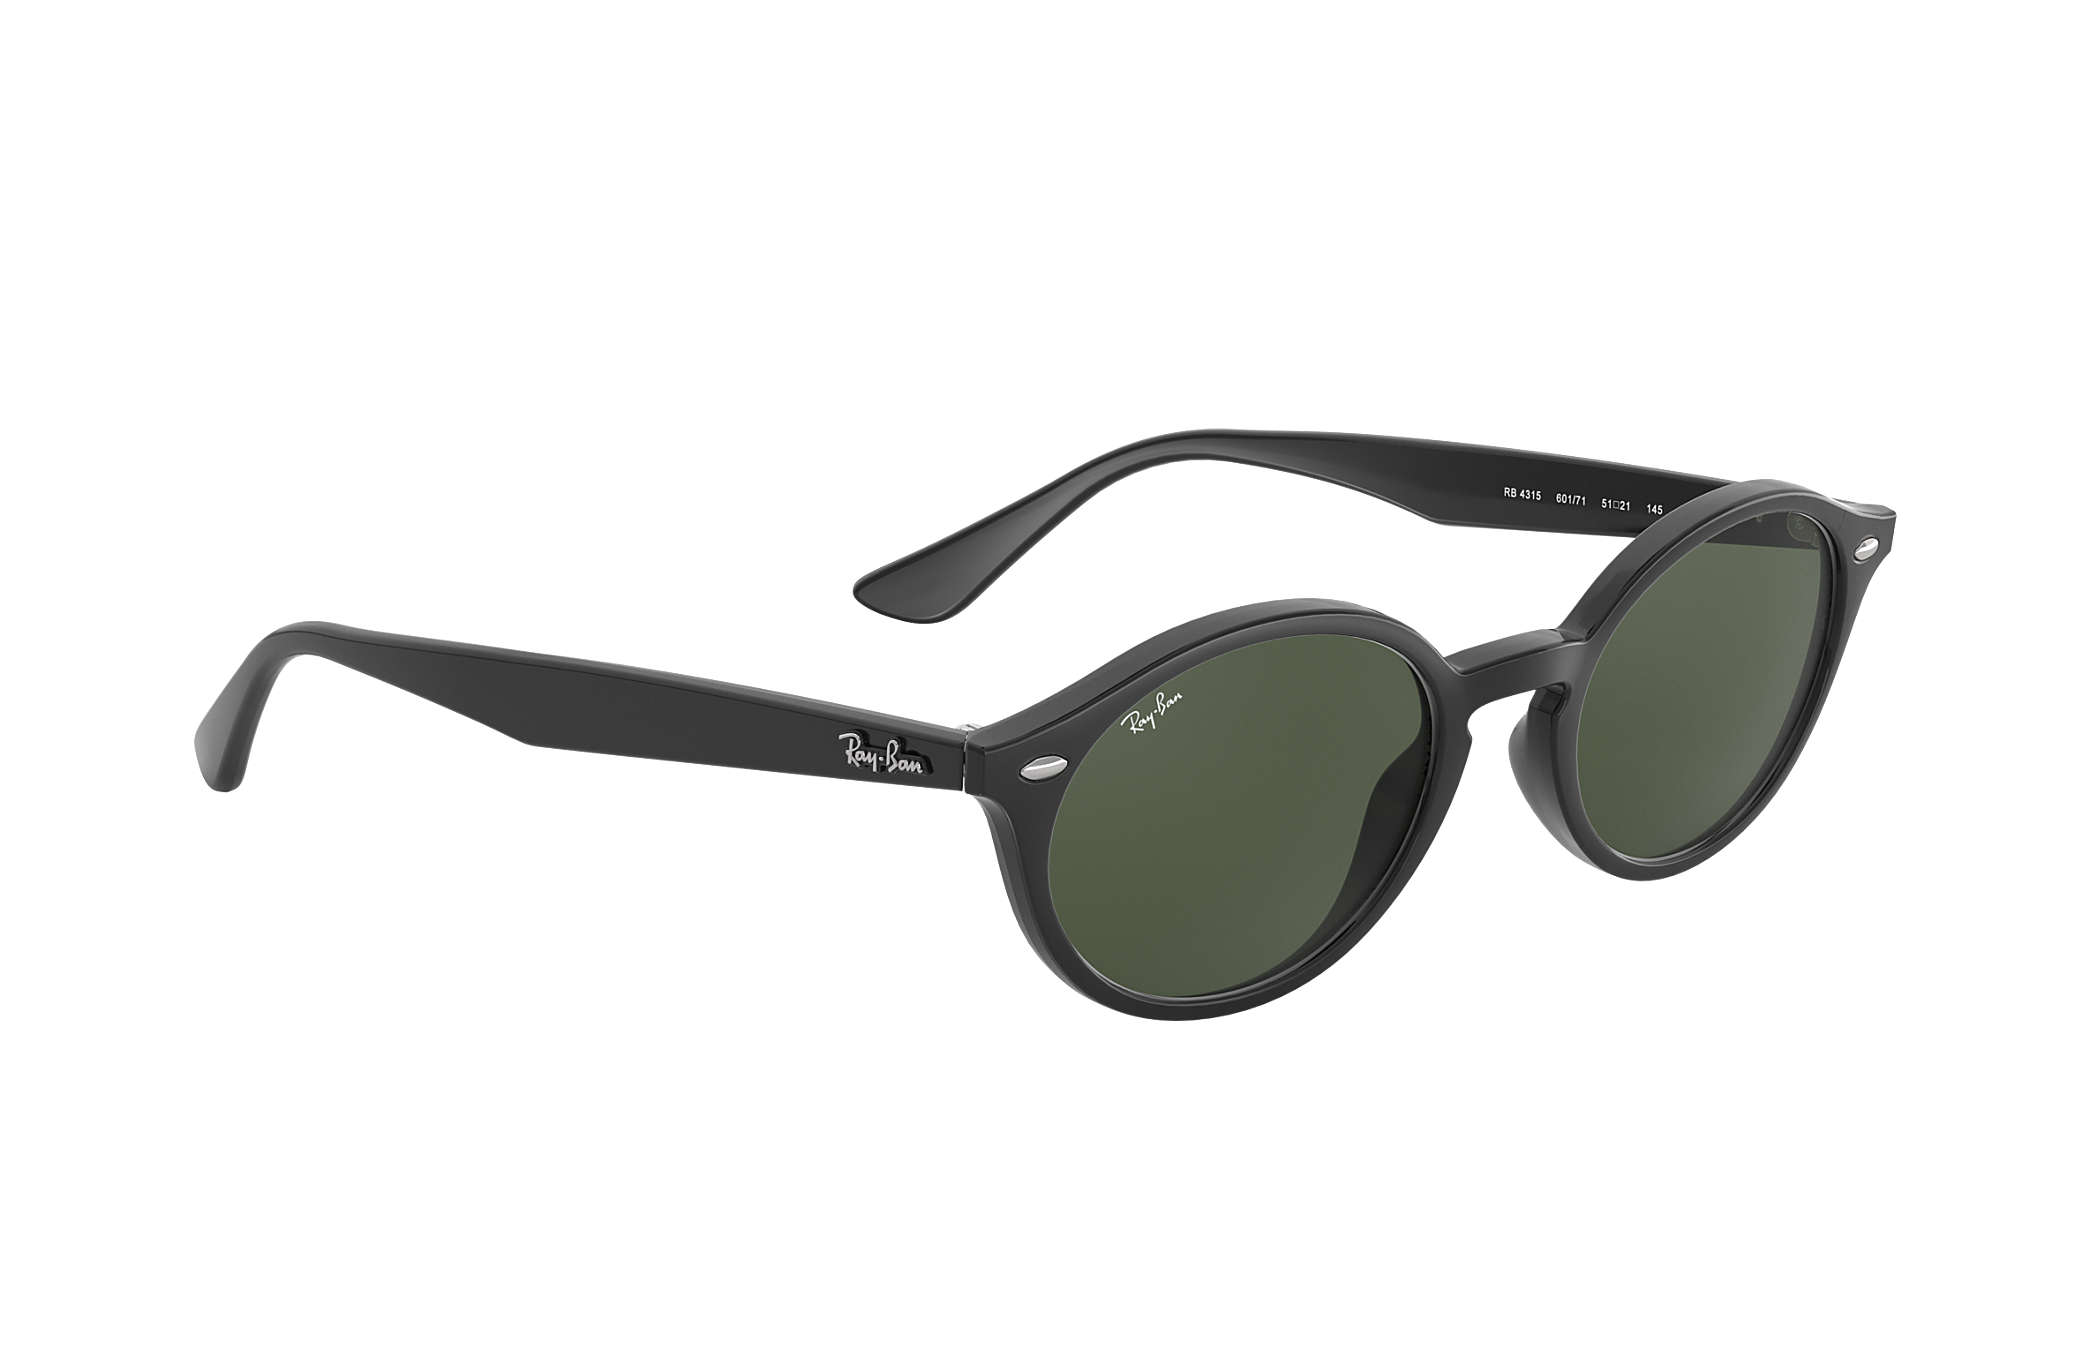 6a8aa8d046c8 Ray Ban Luxottica